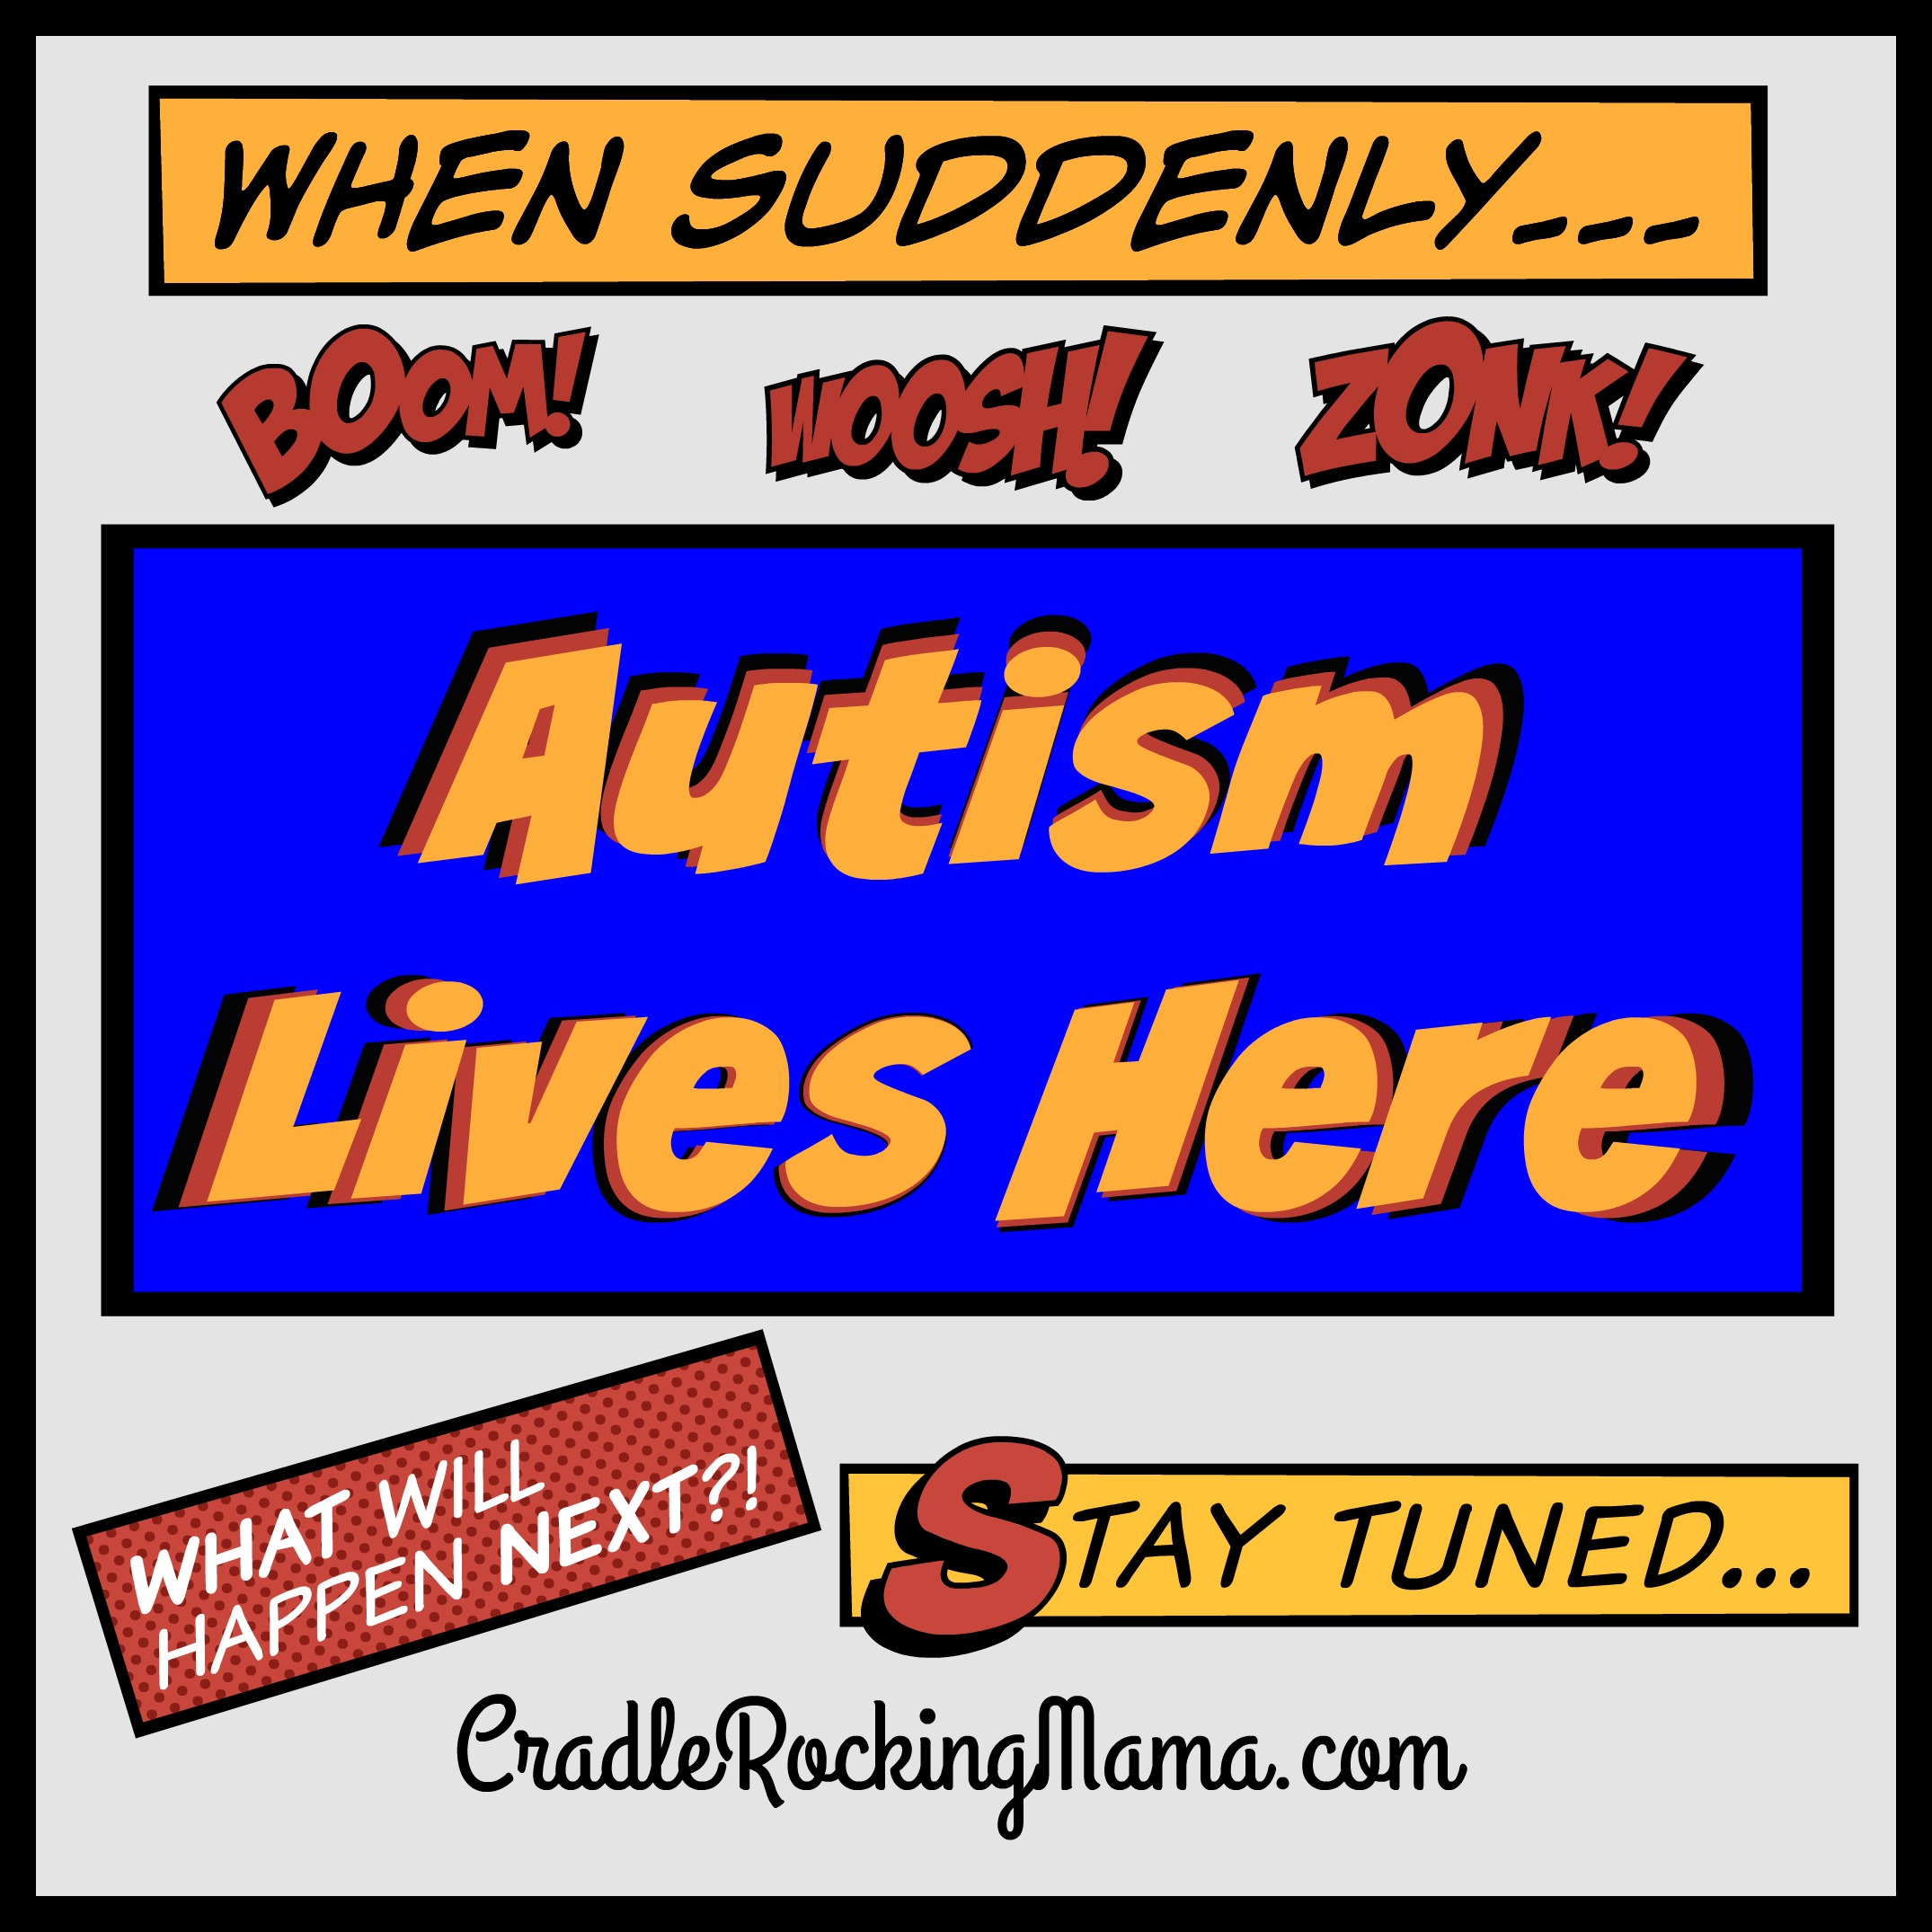 Autism Lives Here CradleRockingMama.com